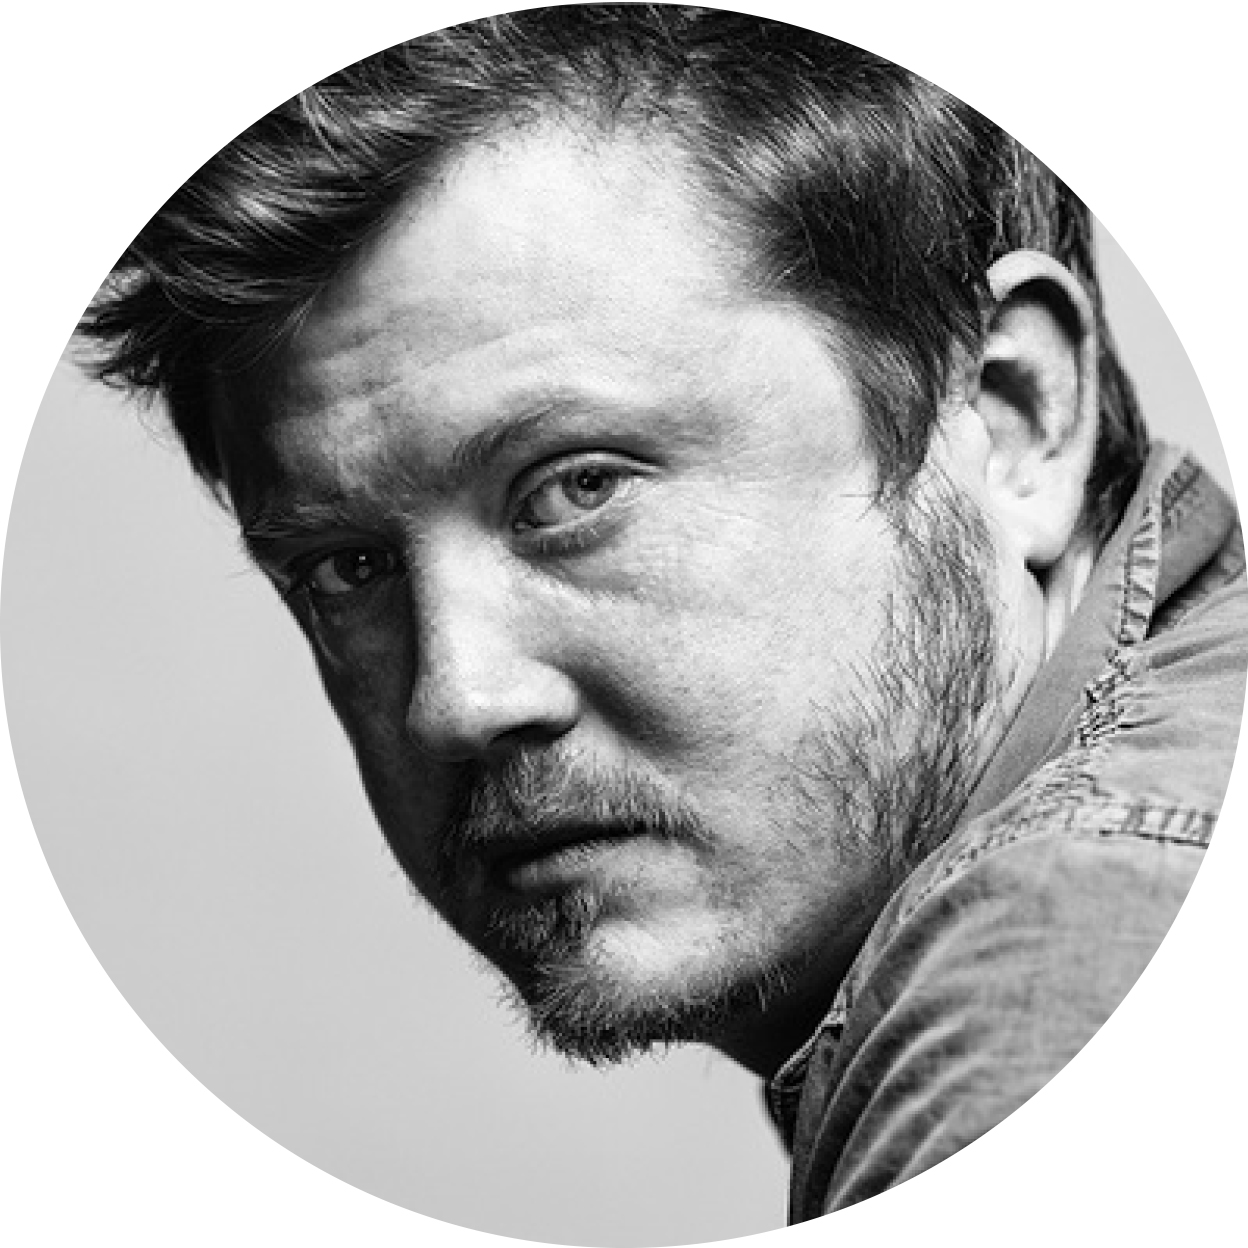 BeauWillimon_BioPicture.jpg